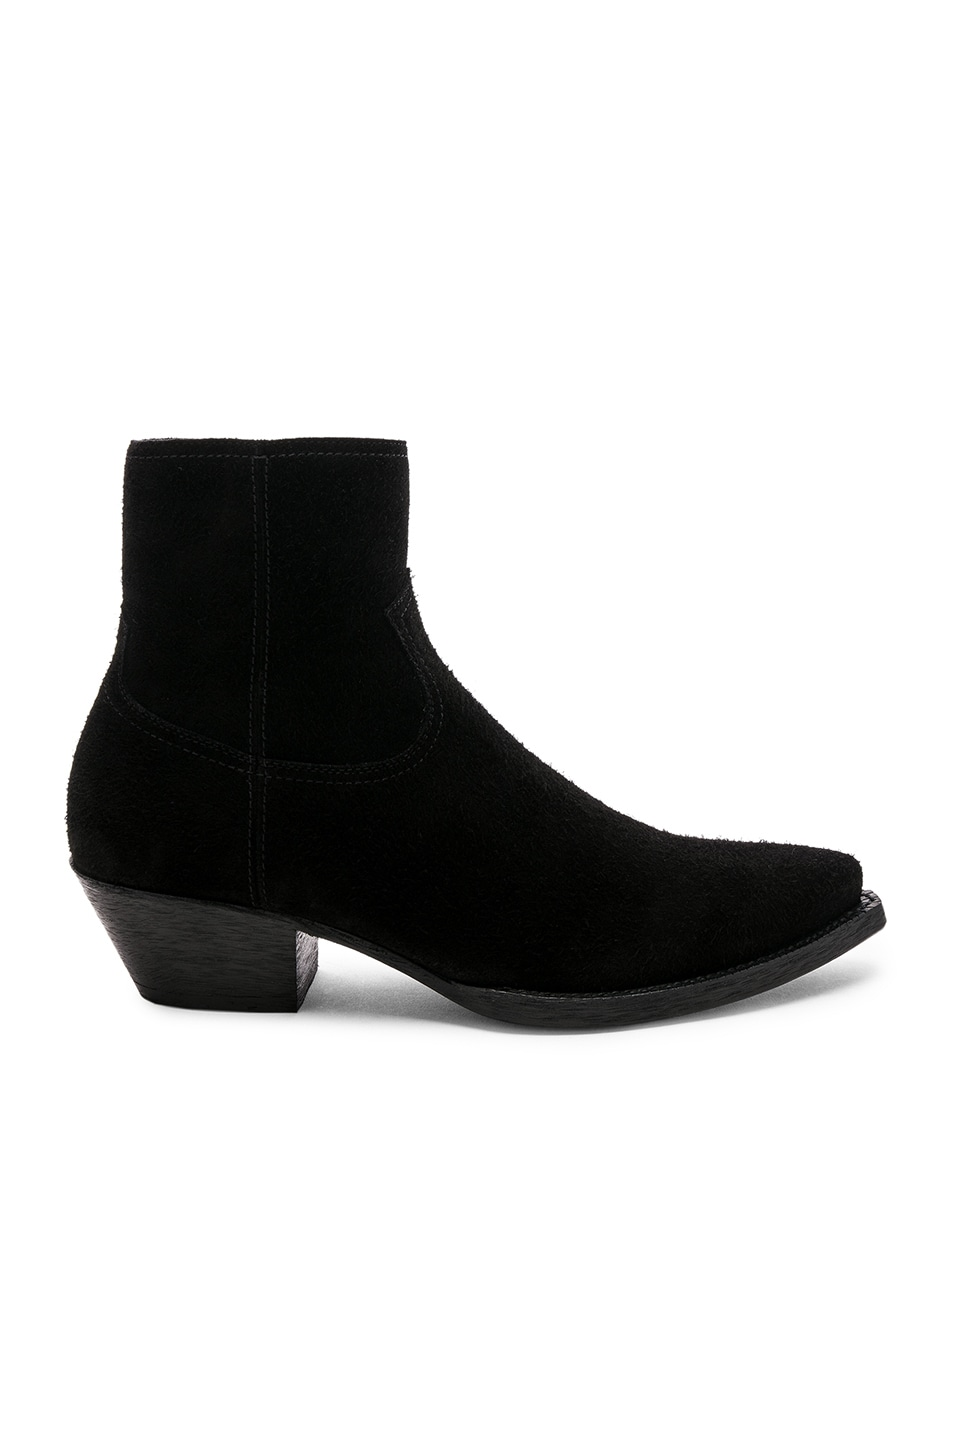 Image 2 of Saint Laurent Suede Lukas 40 Zip Boots in Black